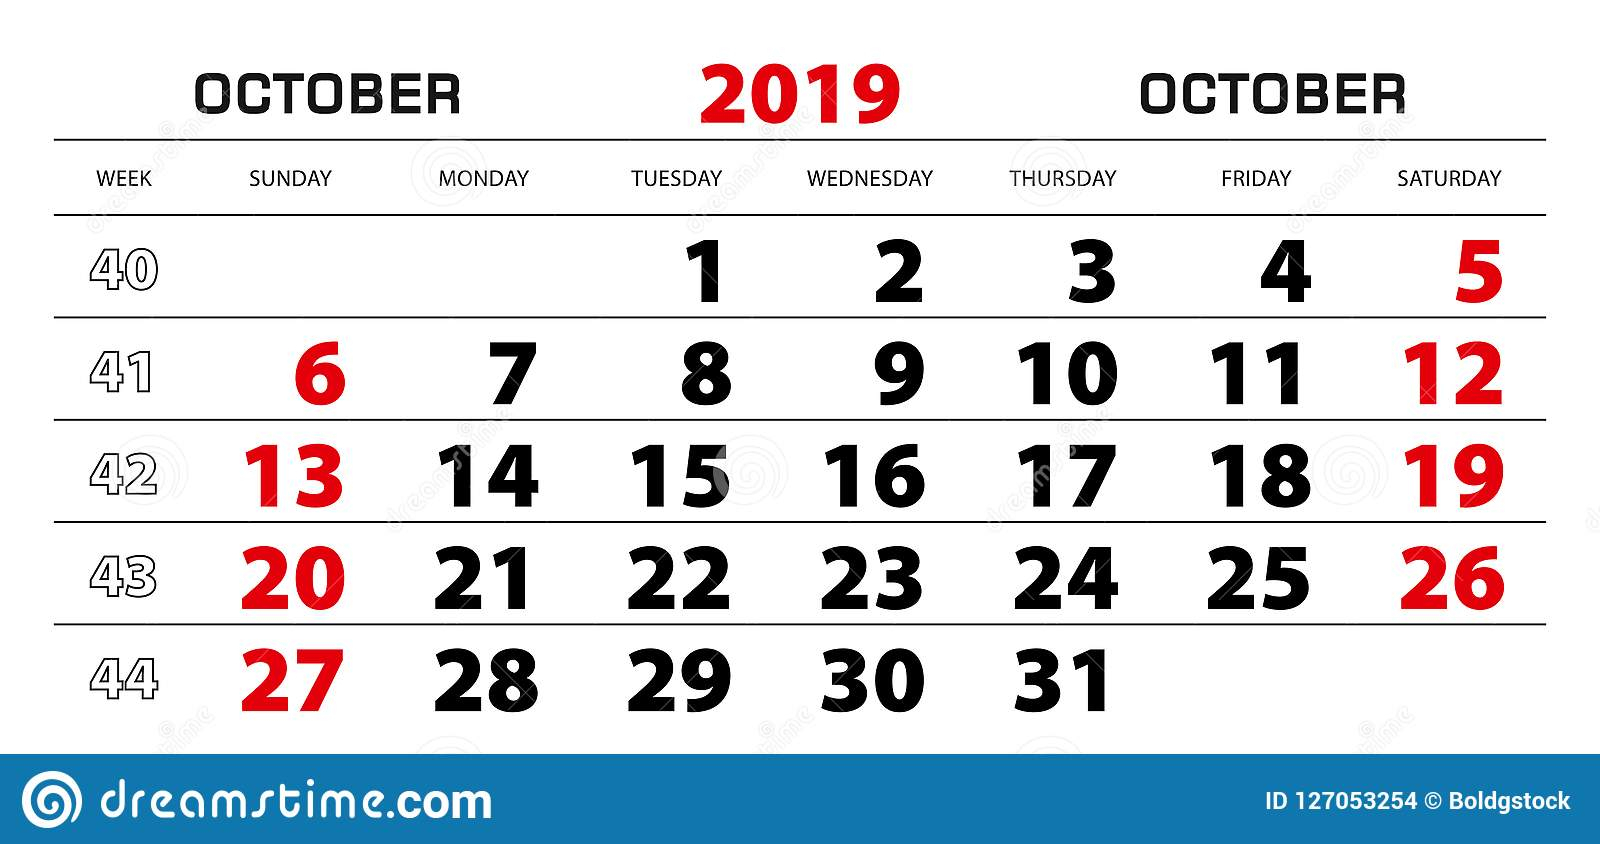 Wall Calendar 2019 For October, Week Start From Sunday